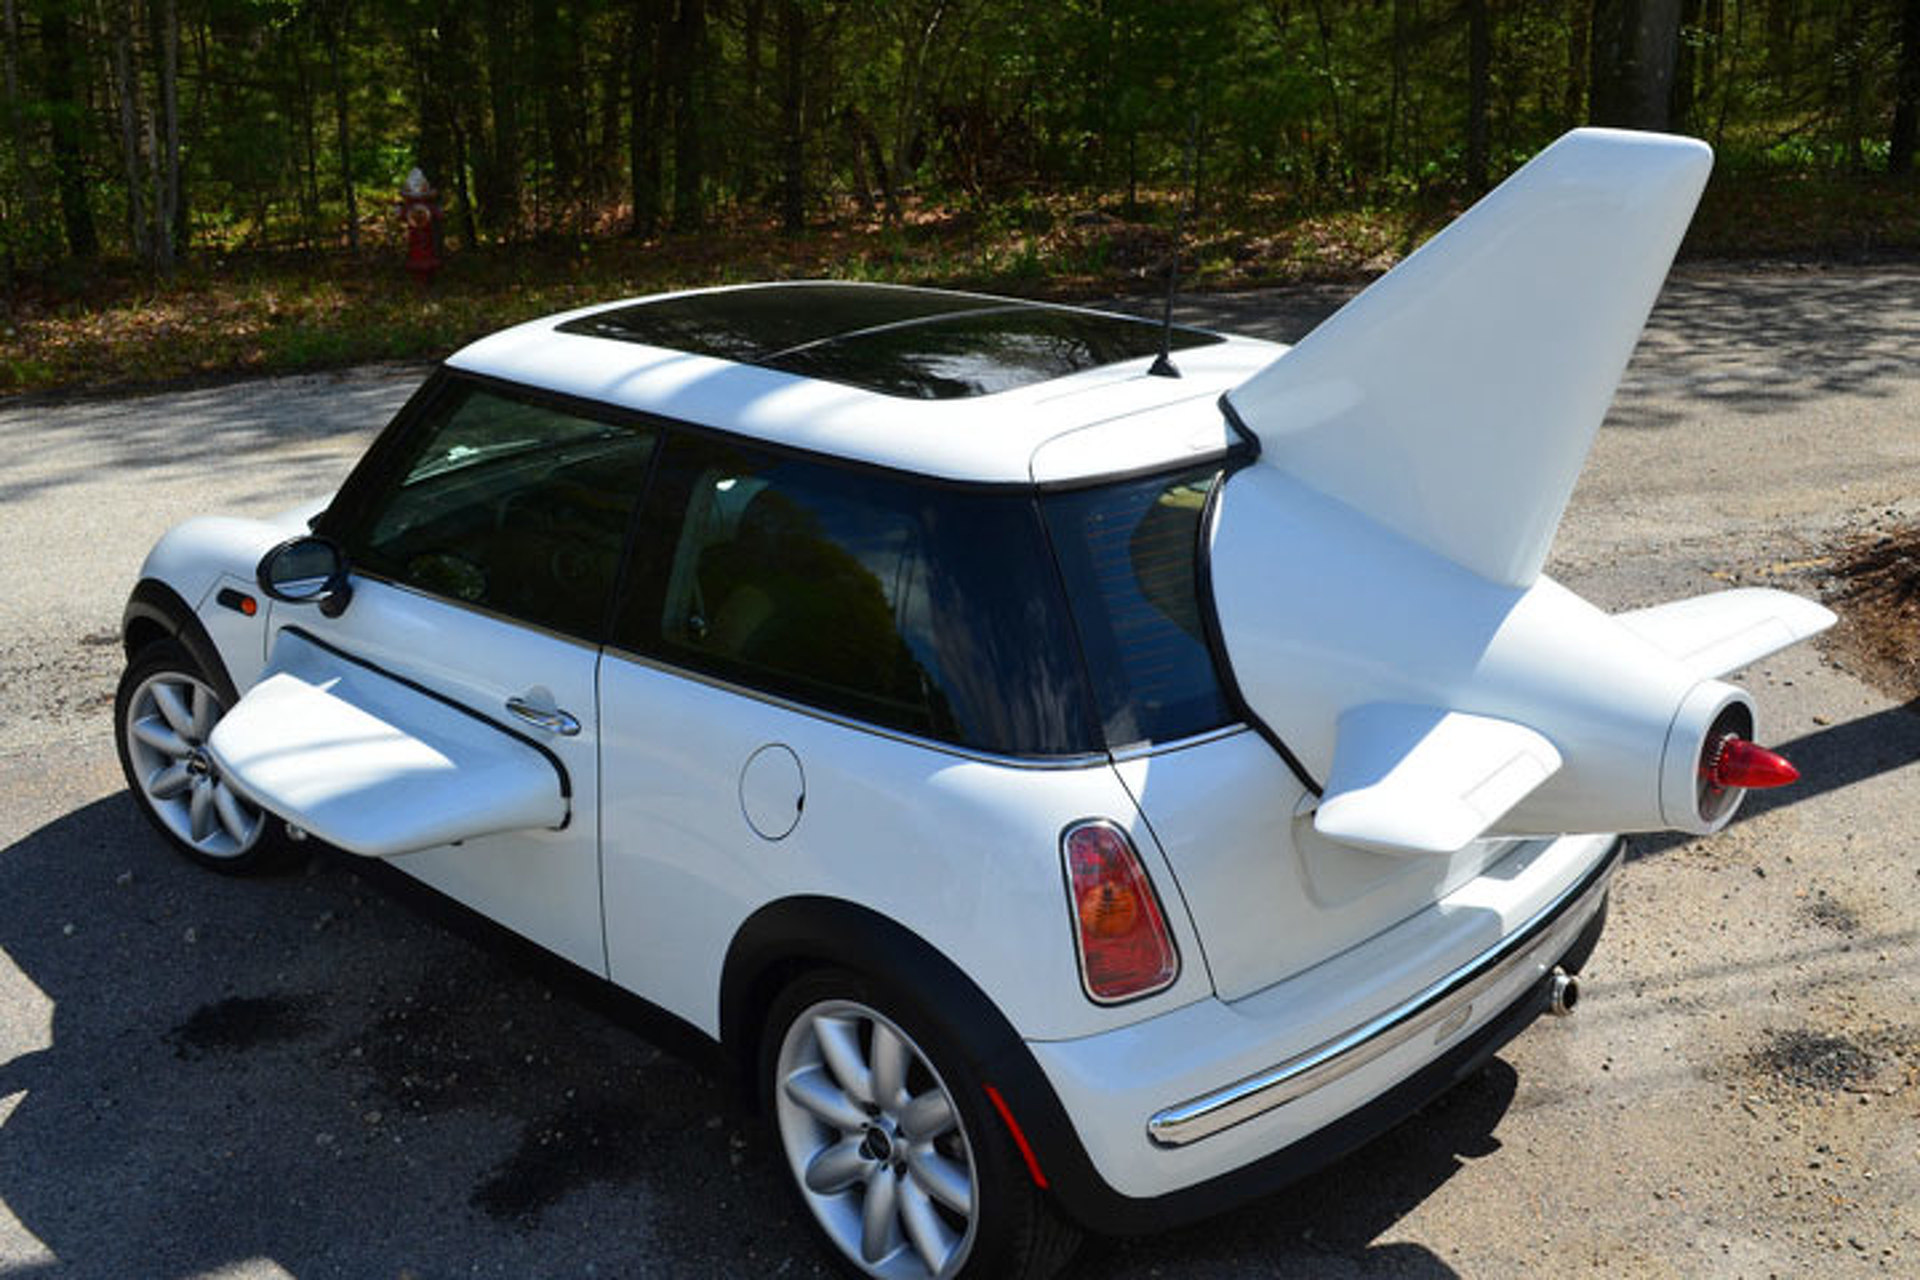 The Slowest Car In The World: This Mini Cooper Is The World's Slowest Plane